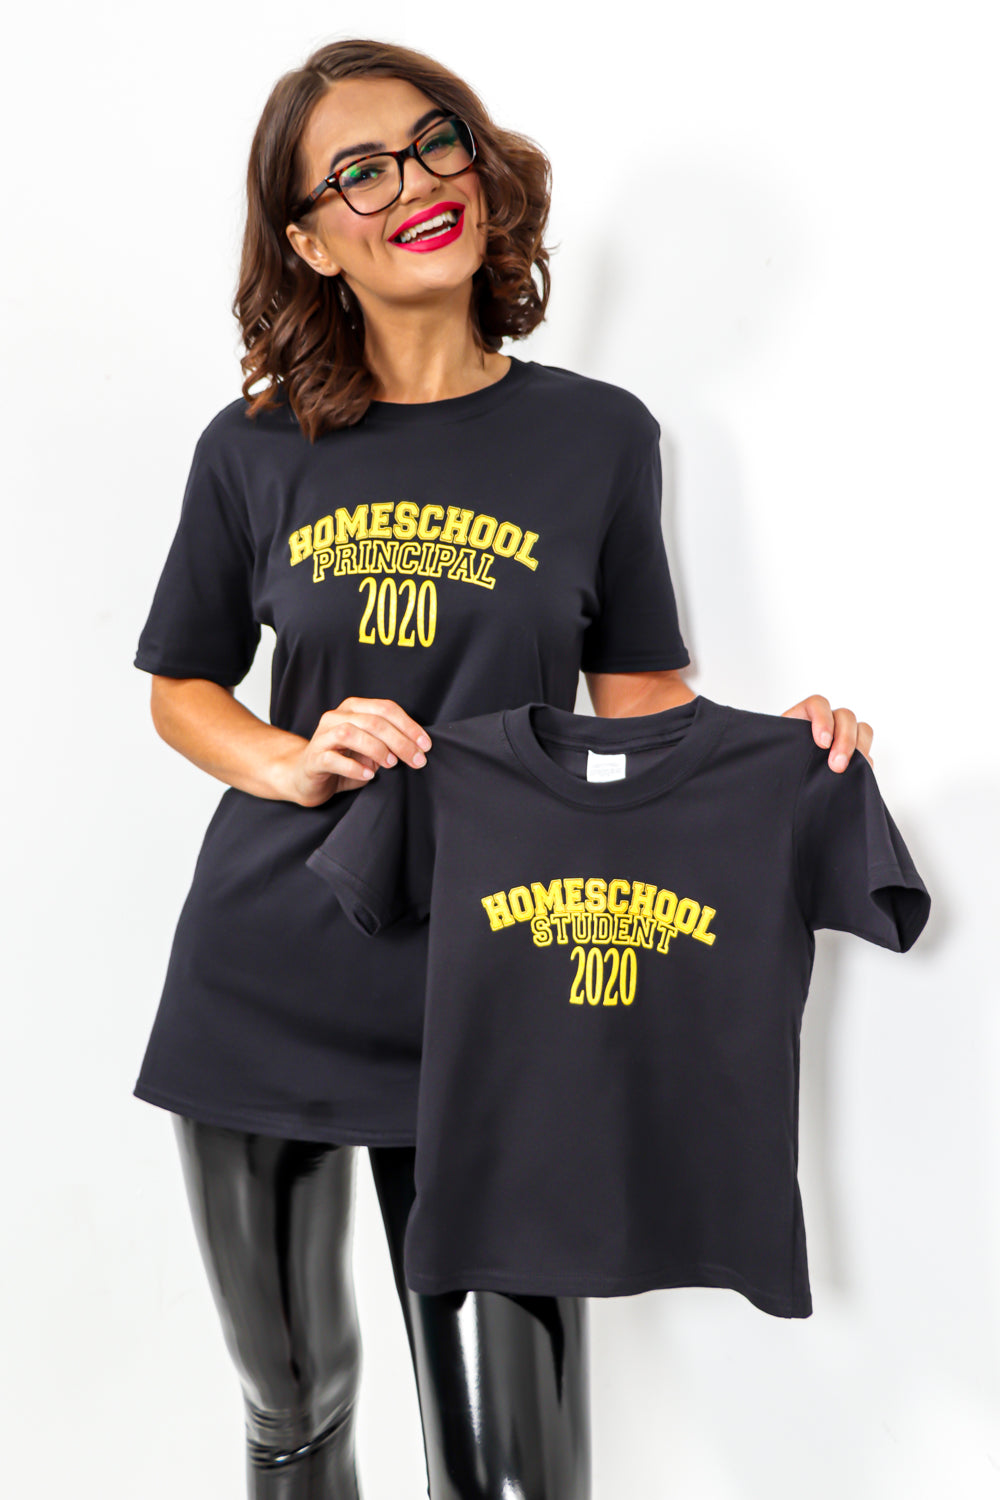 Home School Student 2020 - Children's T-shirt In BLACK